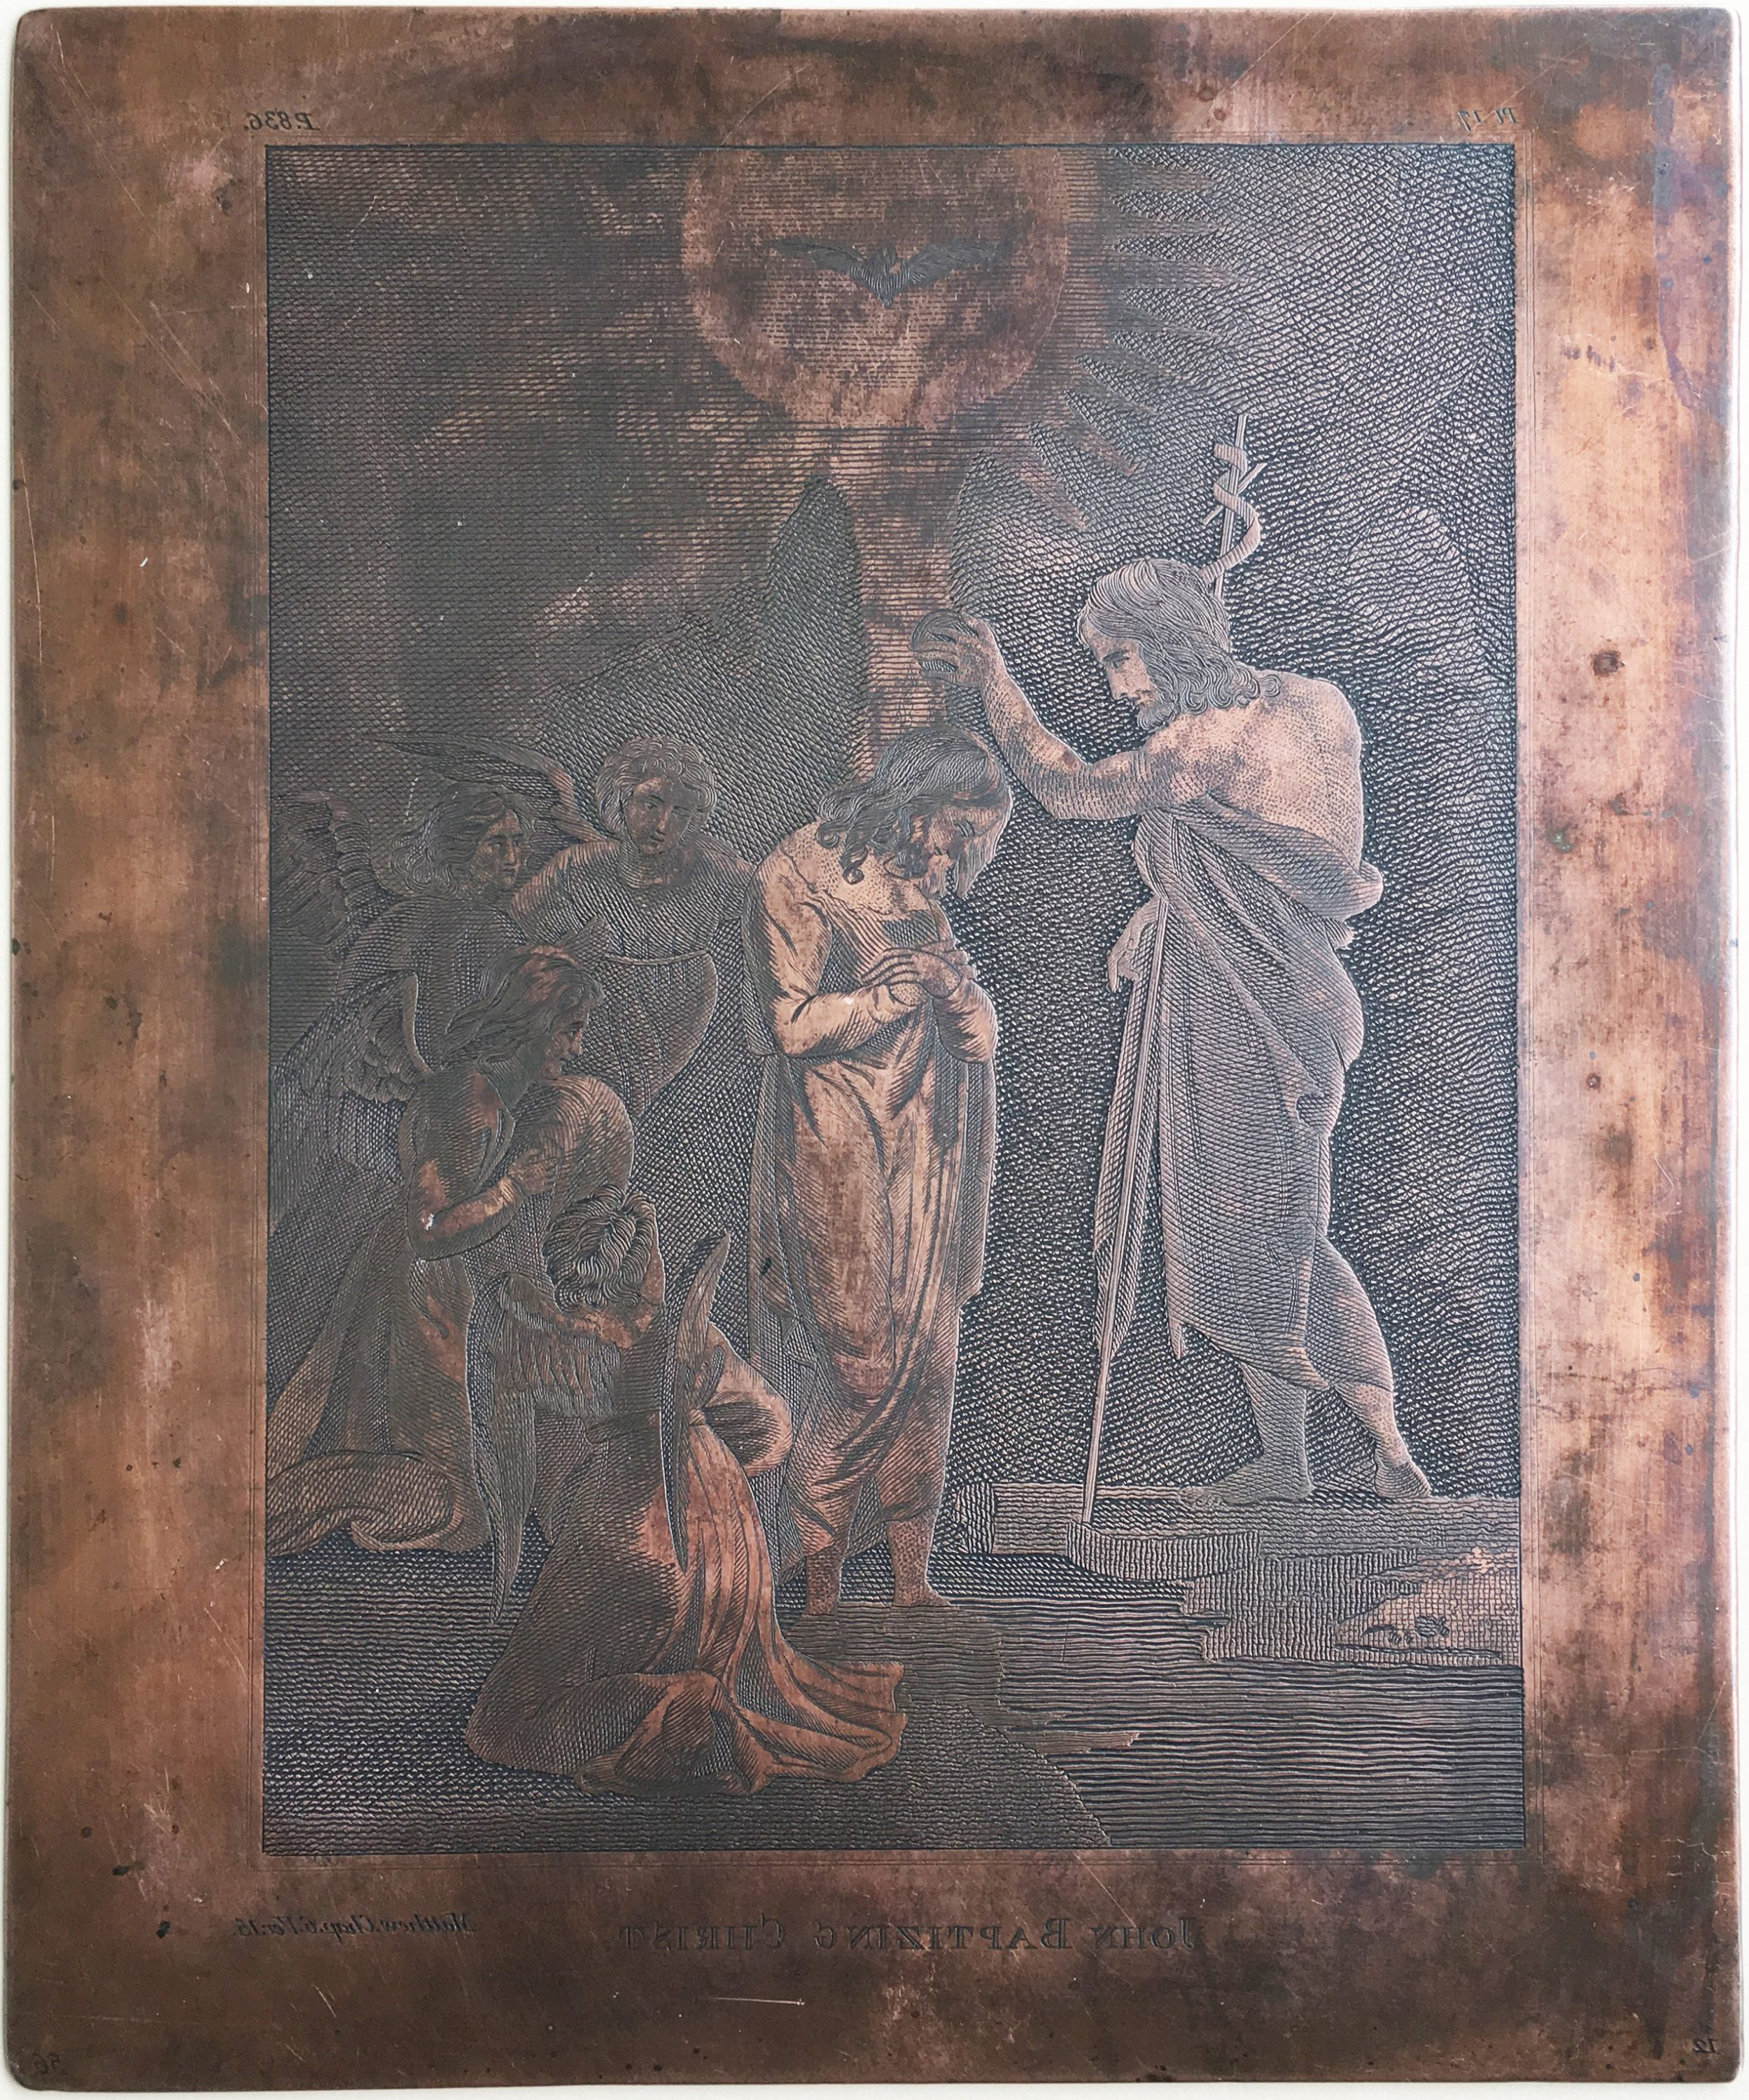 Engraved copper printing plate probably executed for Matthew Carey & Engraved copper printing plate probably executed for Matthew Carey ...